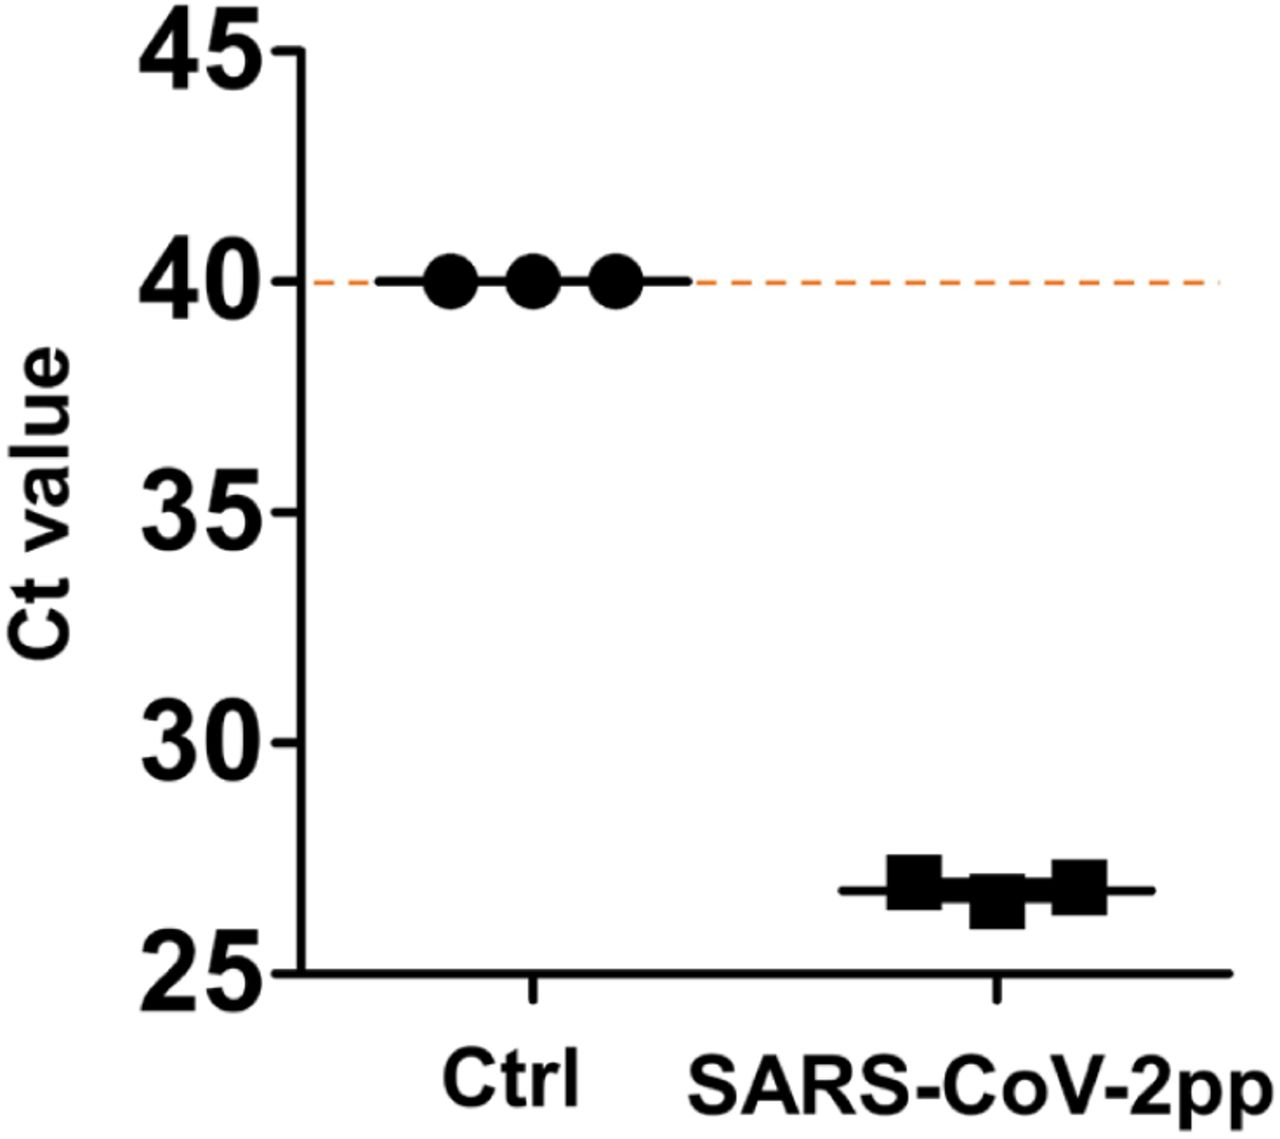 Graphs showing the Ct values of viral pol gene detected by qPCR in the human Airway Chips infected with CoV-2pp. Pseudoparticles without the spike protein of SARS-CoV-2 were used as control (Ctrl).